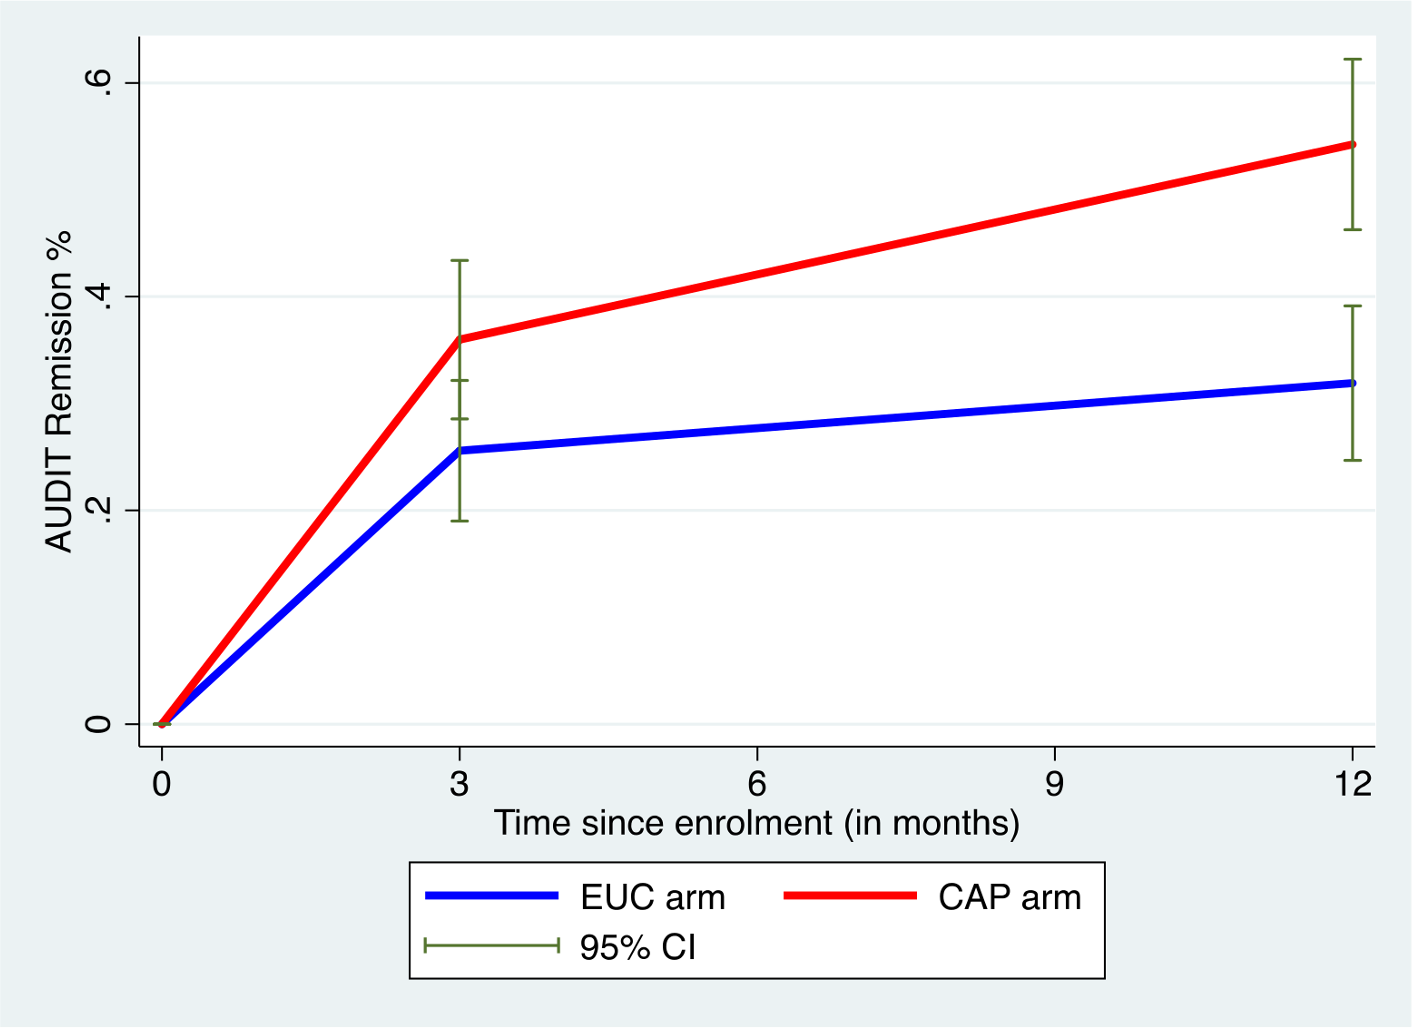 Remission in CAP plus EUC and EUC alone arms at 3 and 12 months.